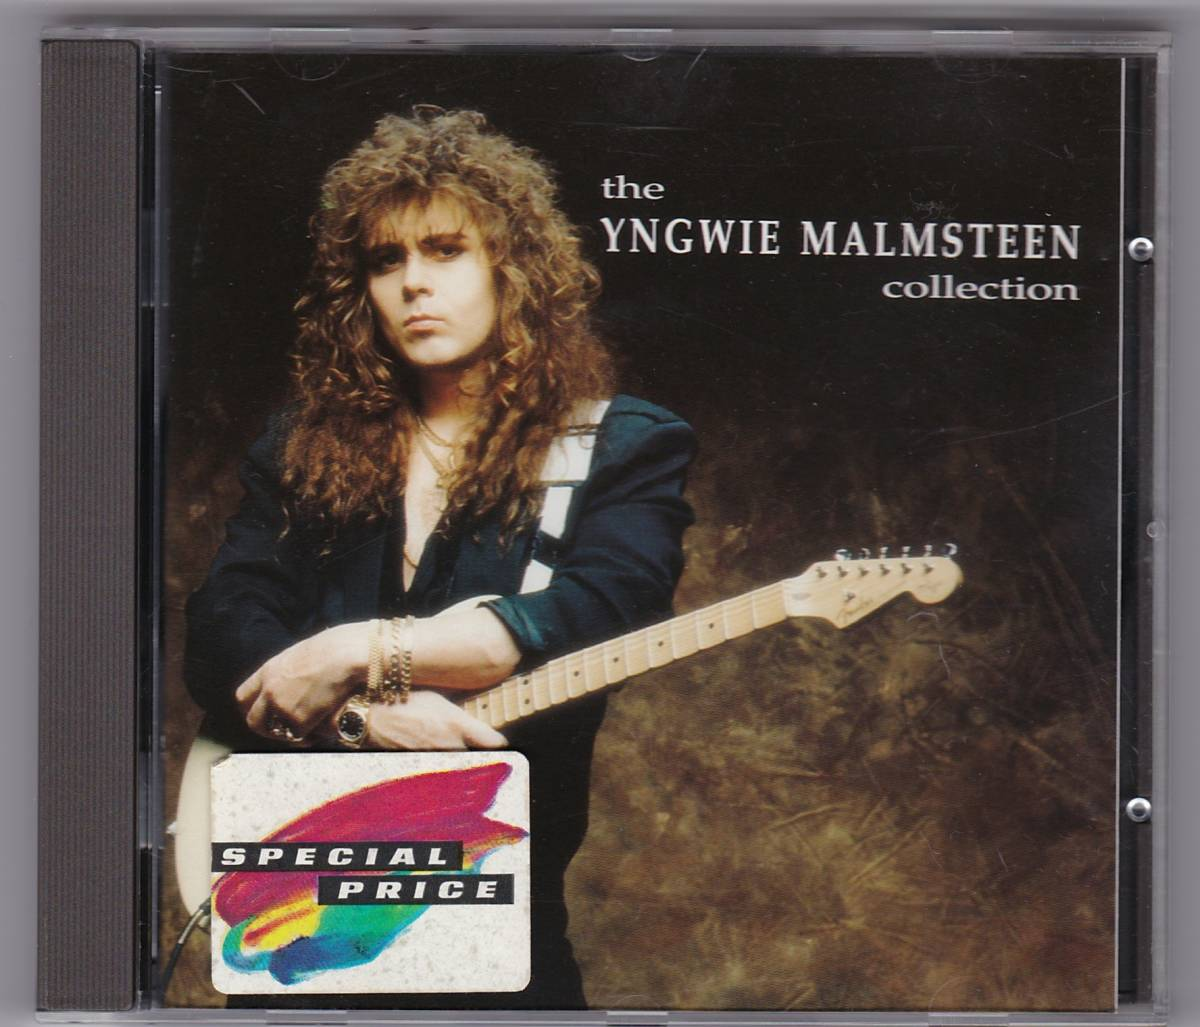 The Yngwie Malmsteen Collection / イングヴェイ・マルムスティーン 中古CD 輸入盤 送料込み 即決